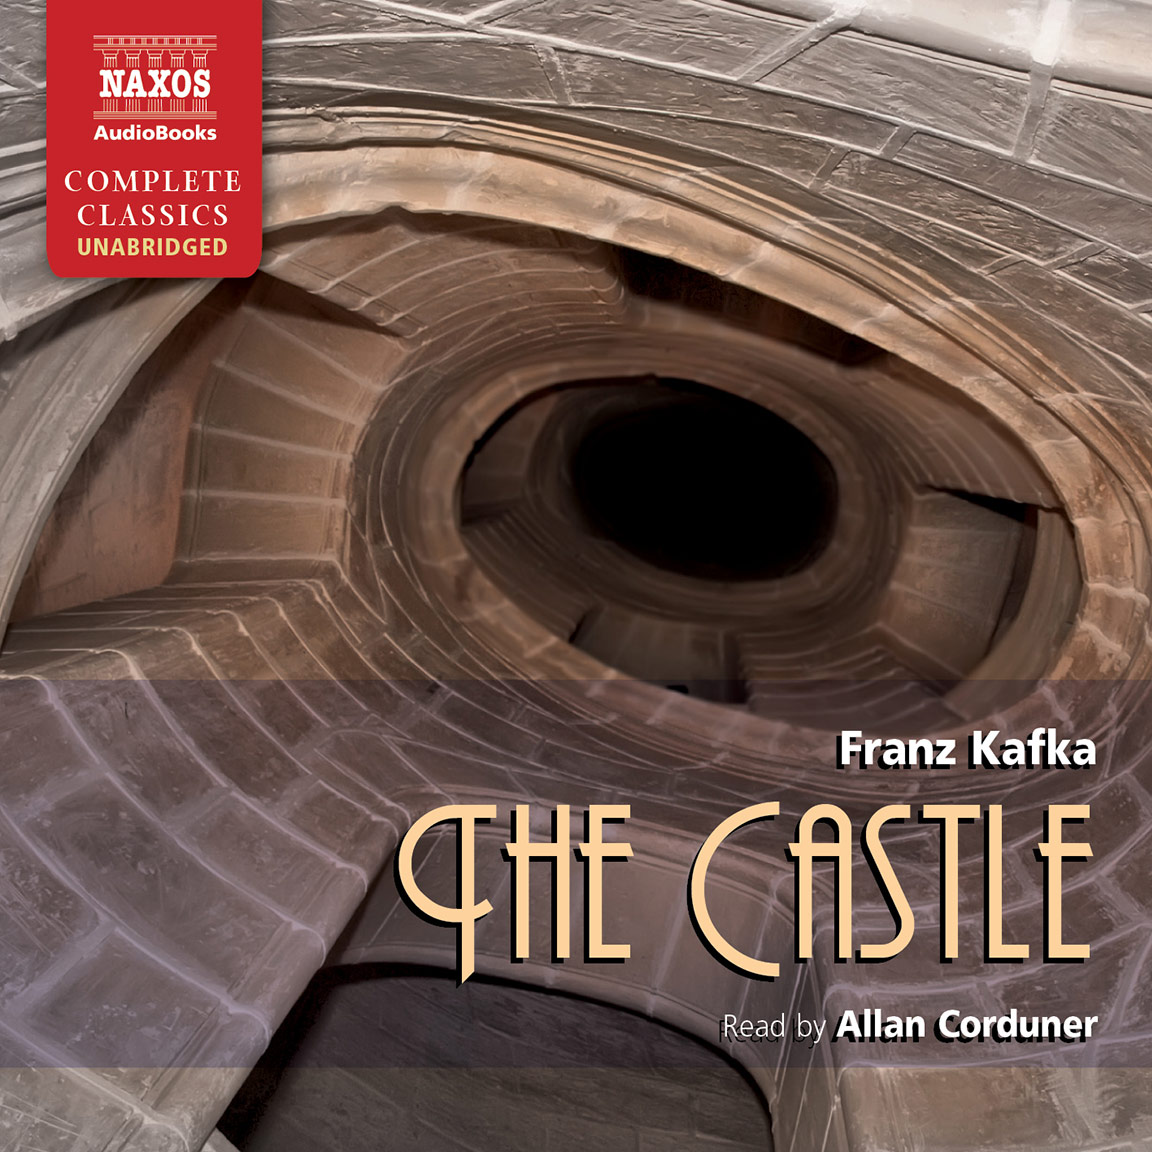 The Castle Kafka Ebook